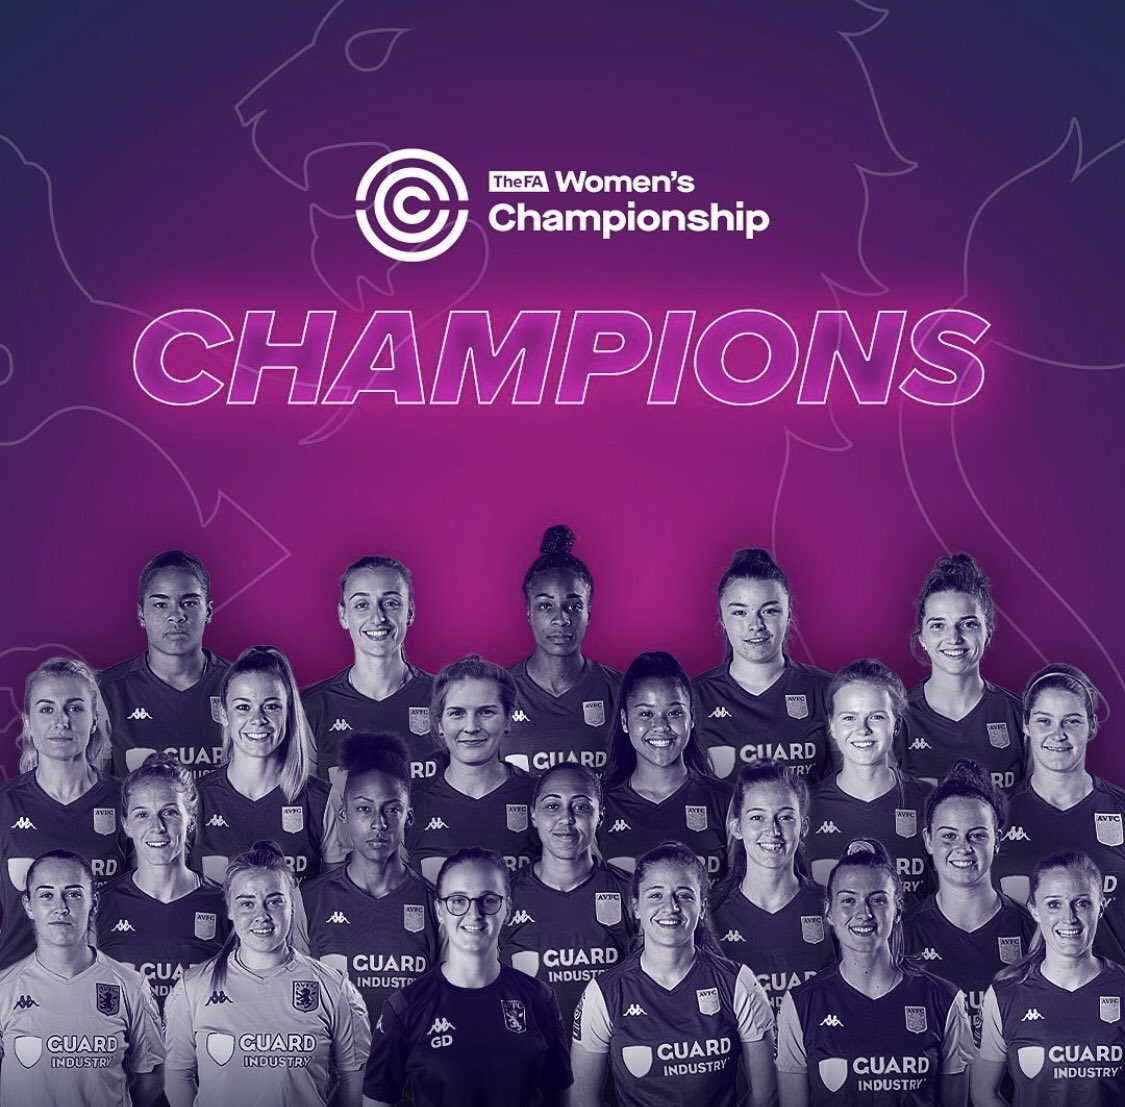 Congratulations @AVWFCOfficial on being crowned Champions! 🏆 A great campaign led by manager @GemDav6 Special mentions to @amywestt & @shania_hayles for a brilliant season! Roll on the Women's Super League! 👏🏻 #AVFC #UTV